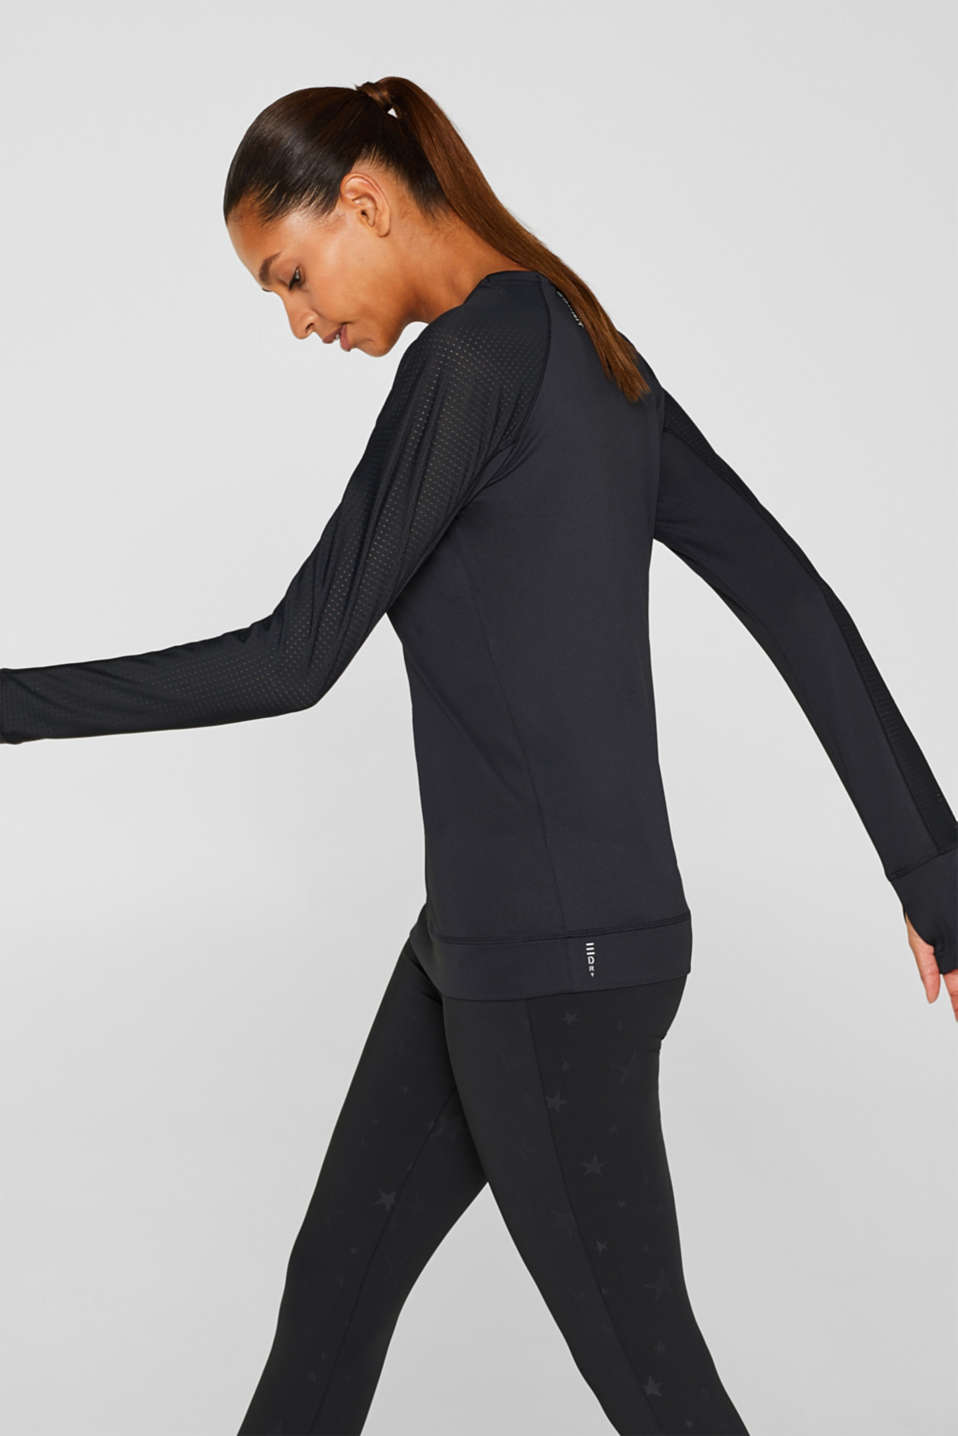 Esprit - Stretchy long sleeve top with mesh sleeves, E-DRY